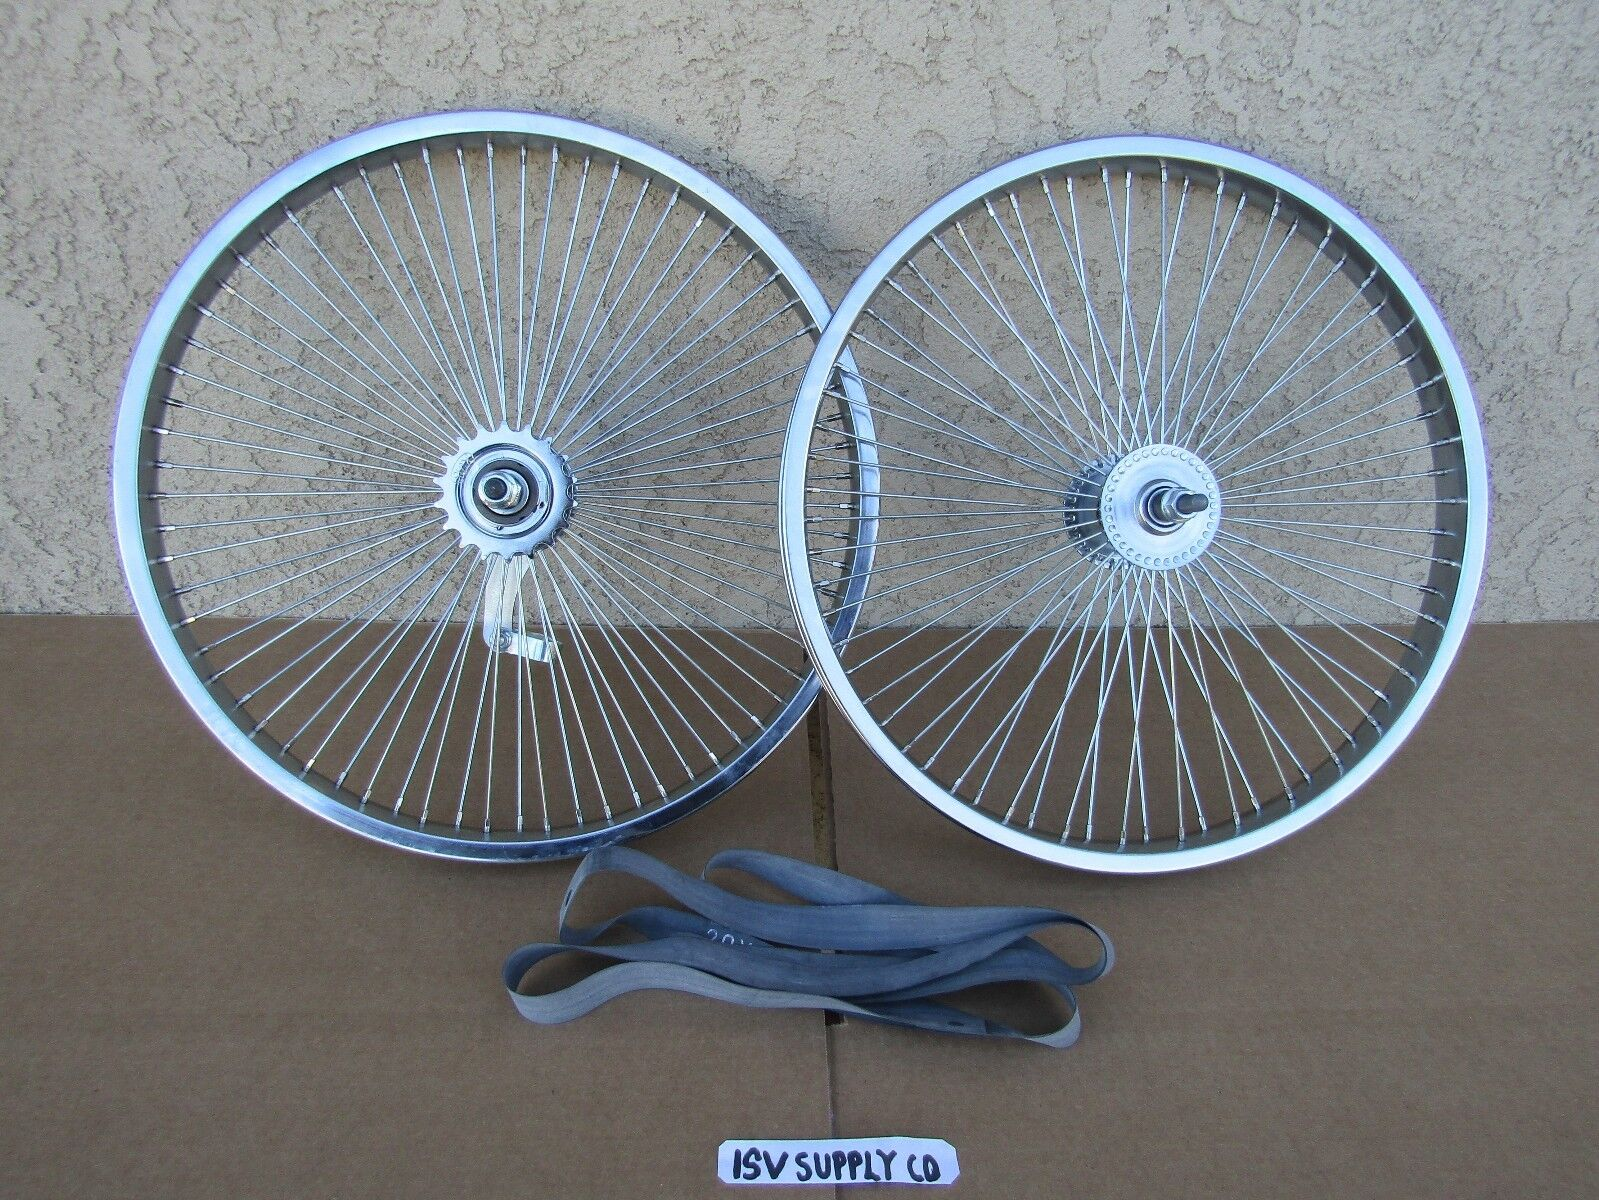 NEW BICYCLE 20'' x 1.75 LOW-RIDER WHEEL SET 68 SPOKES , LOWRIDER, BMX, TRICYCLE